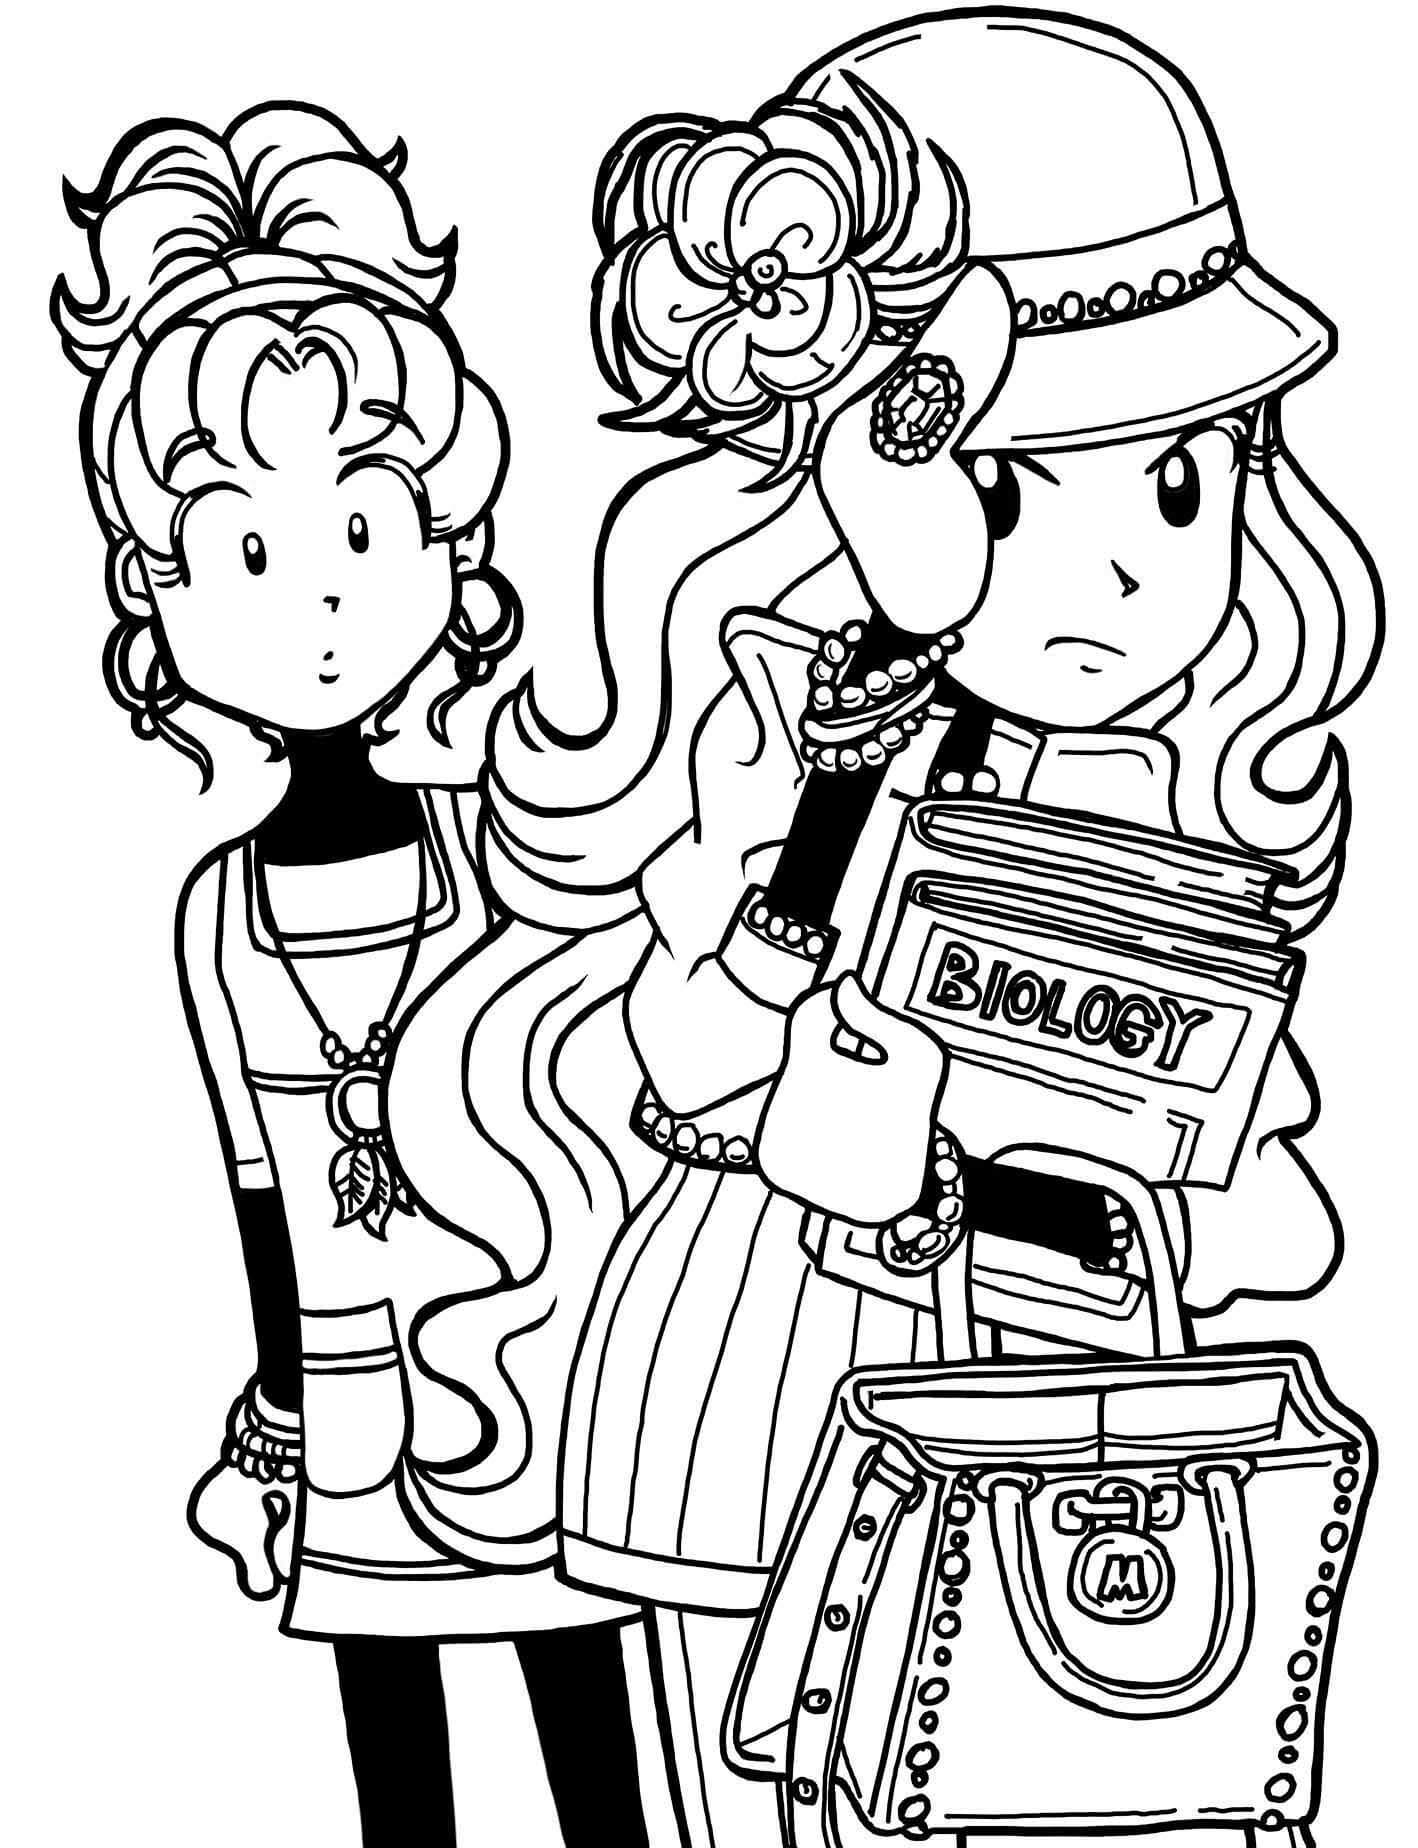 dork diaries 8 coloring pages - photo#33